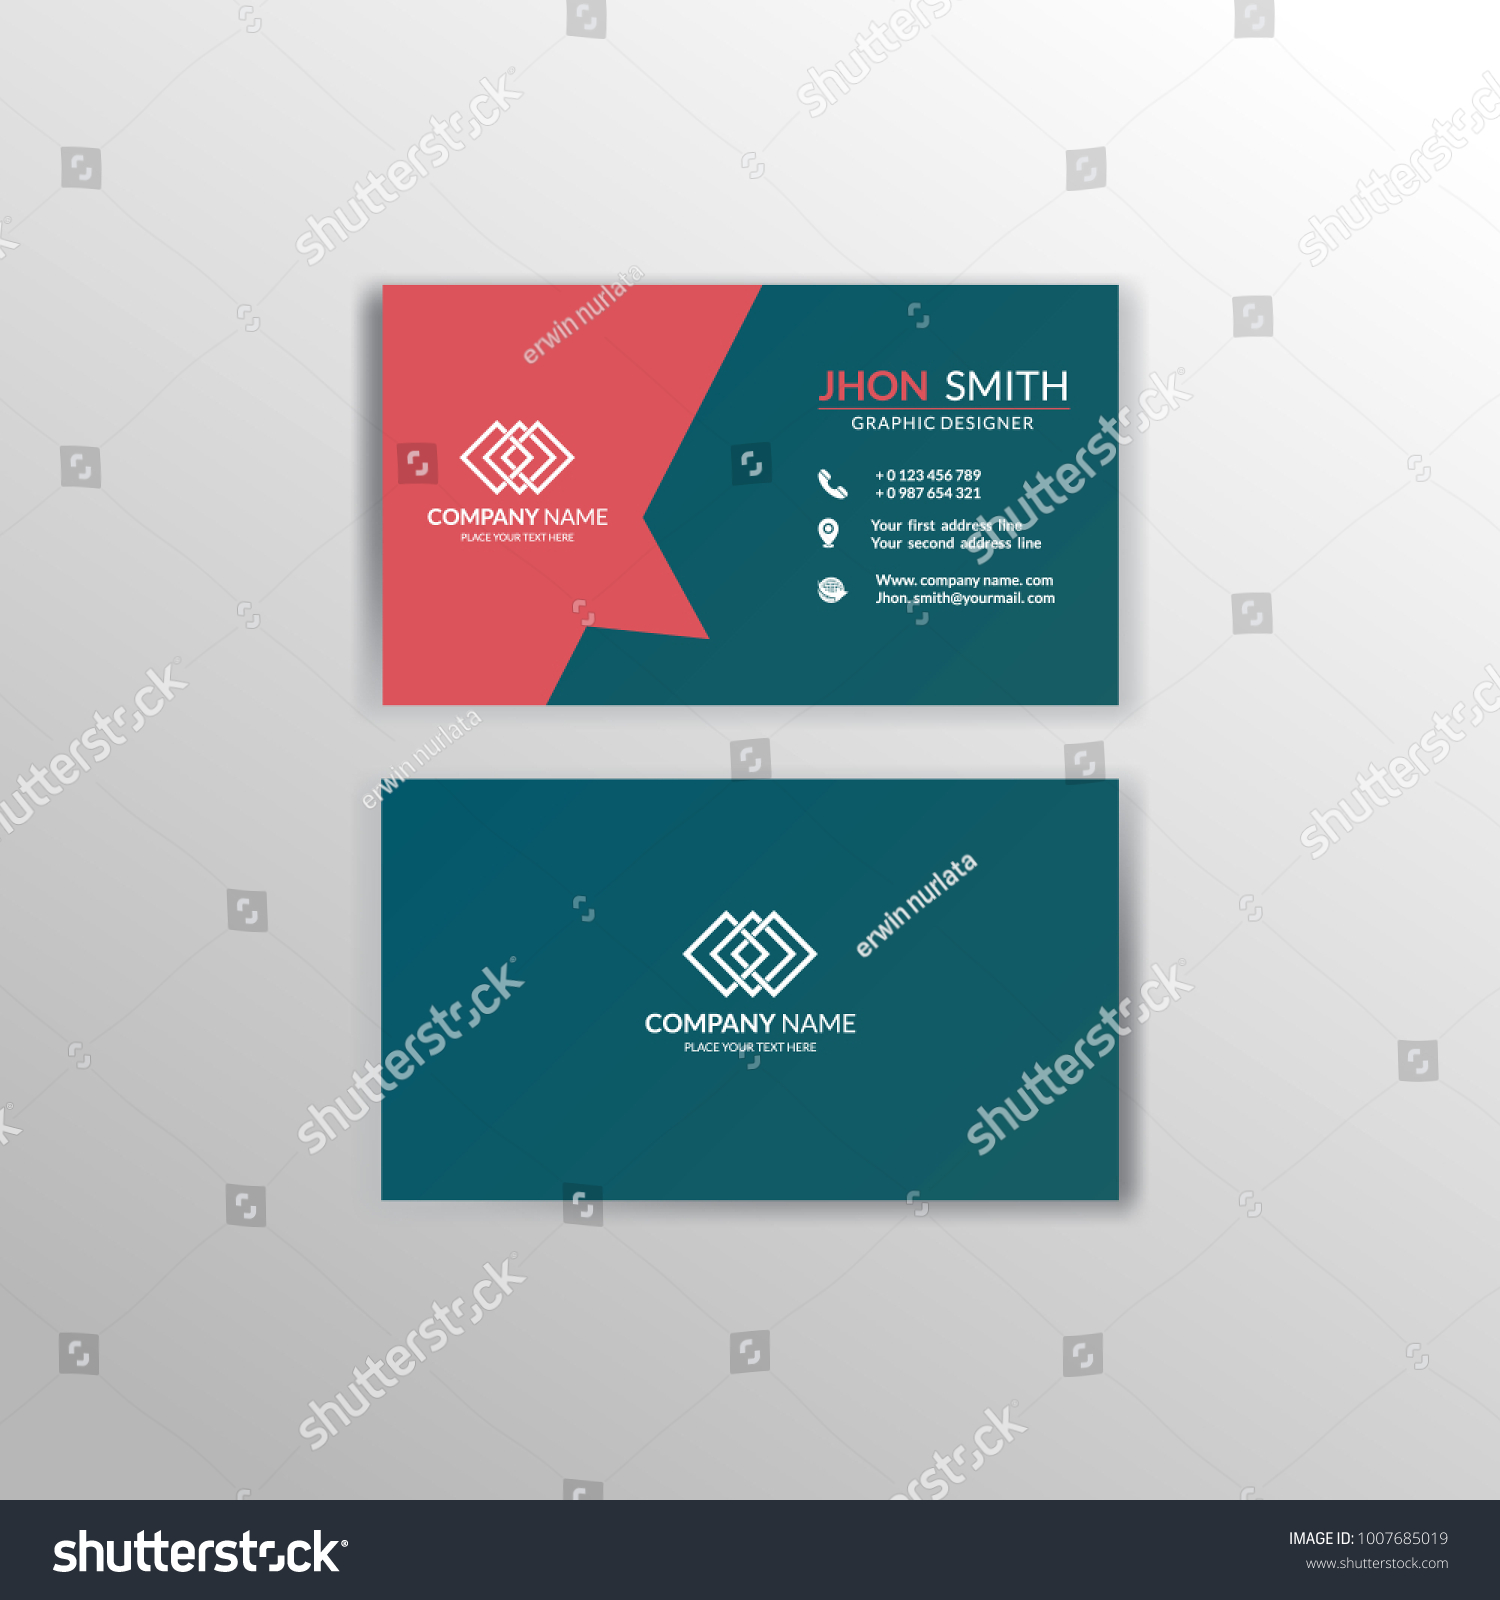 Business Card Design Layout Template Stock Vector 1007685019 ...